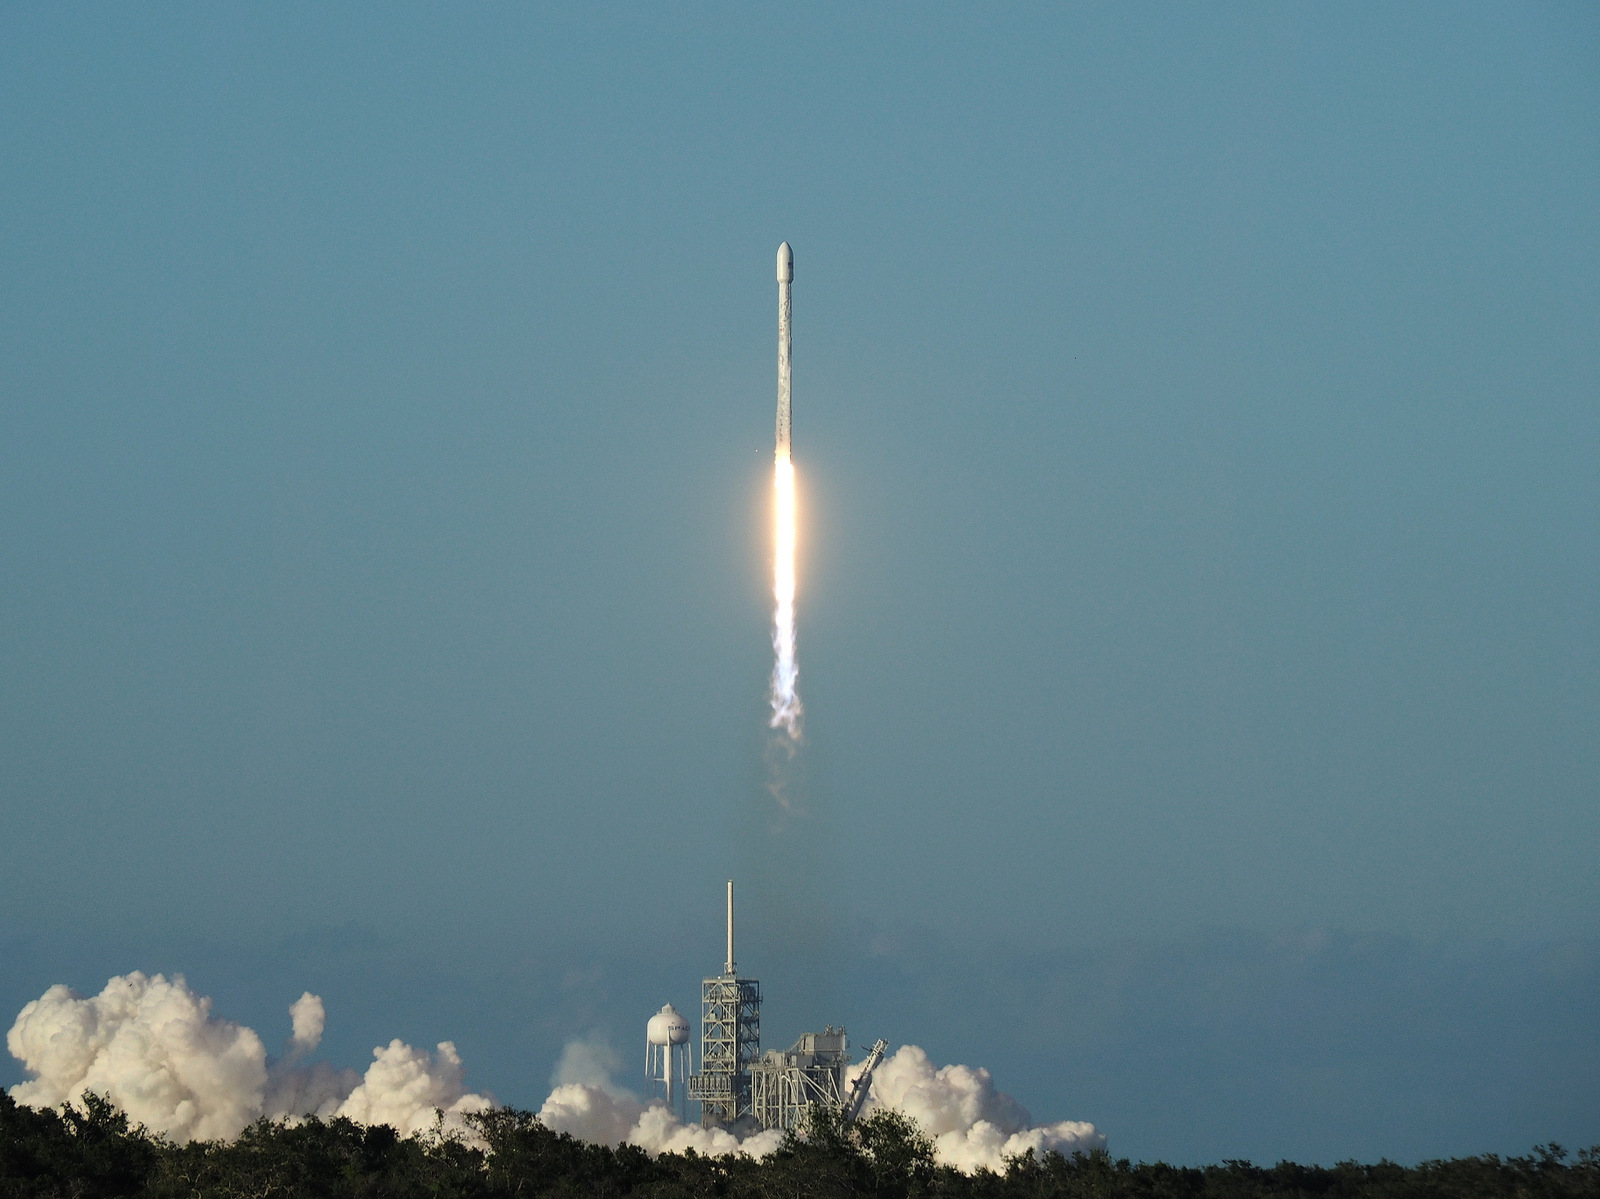 Inmarsat's I5-F4 communications satellite is launched at the Kennedy Space Center.